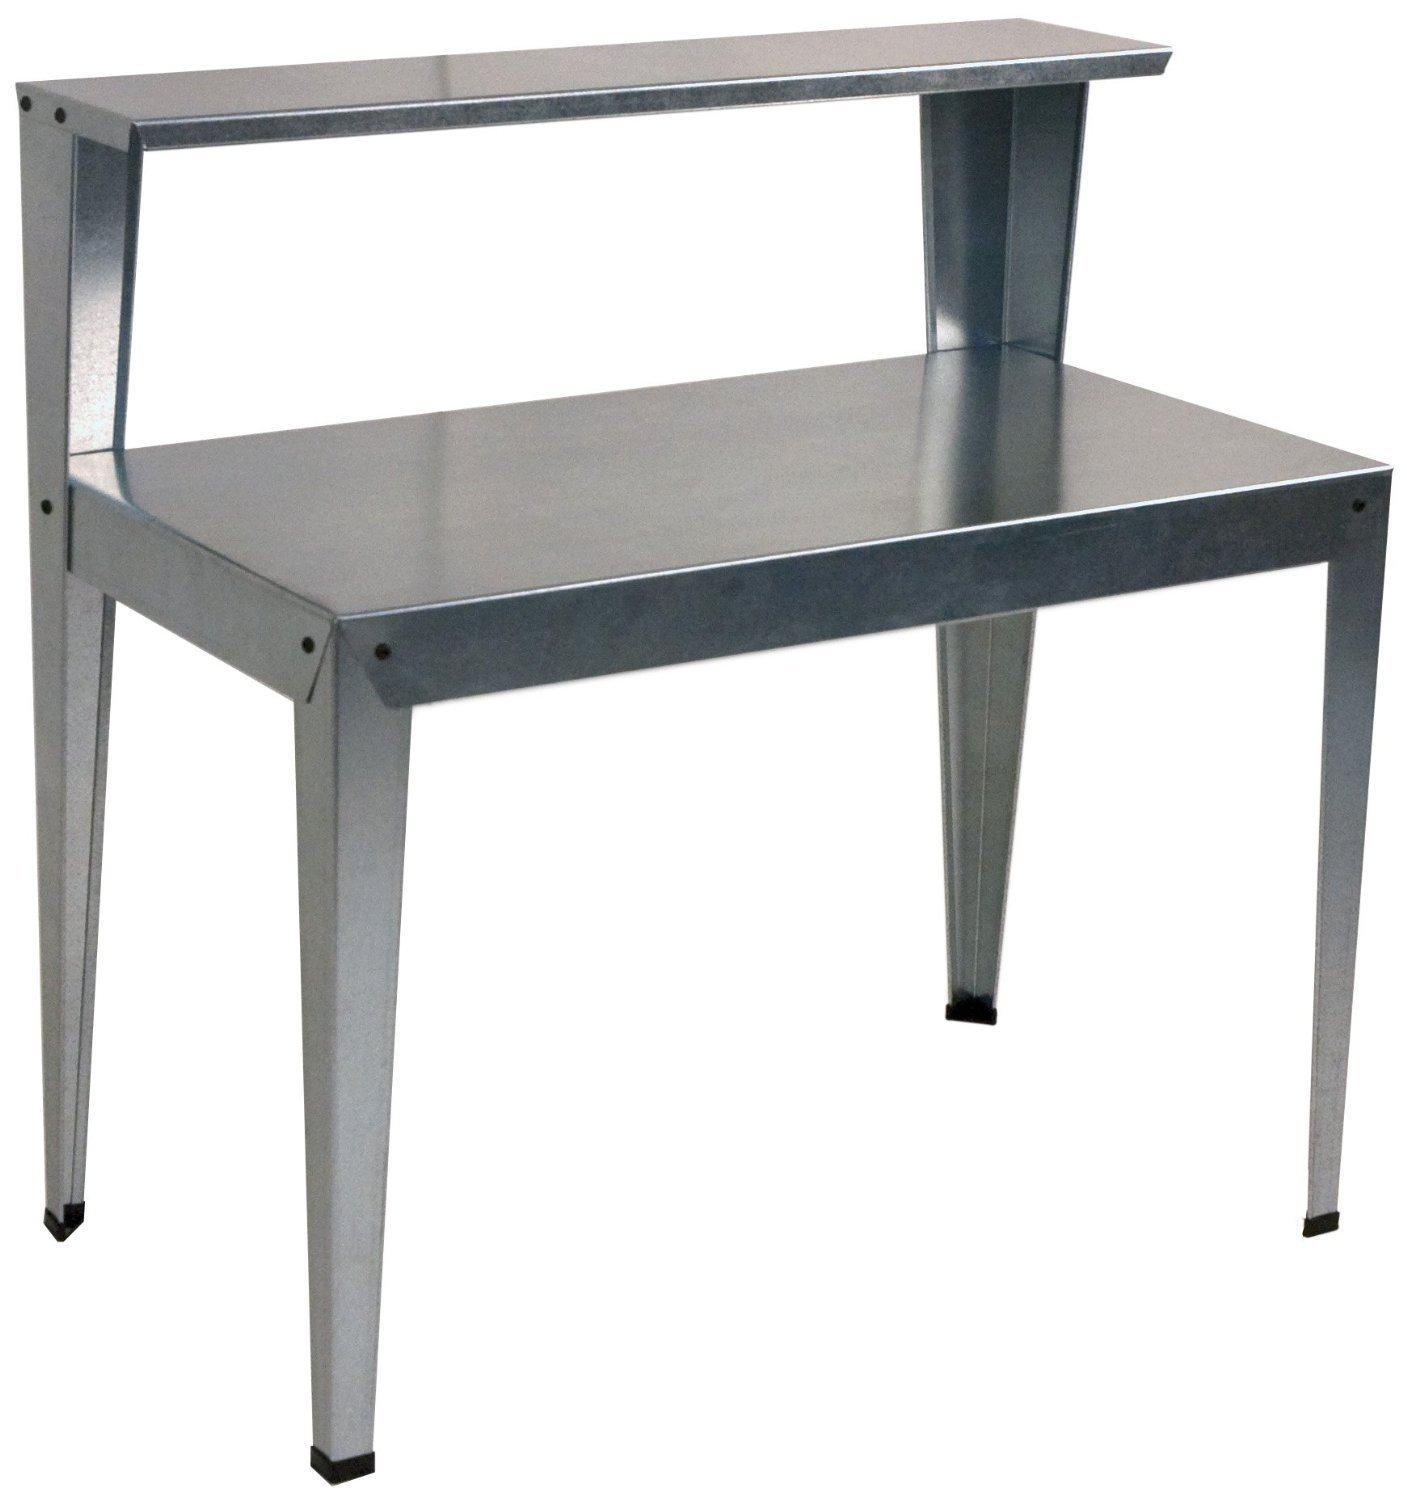 Poly-Tex Galvanized Potting Bench by Poly-Tex